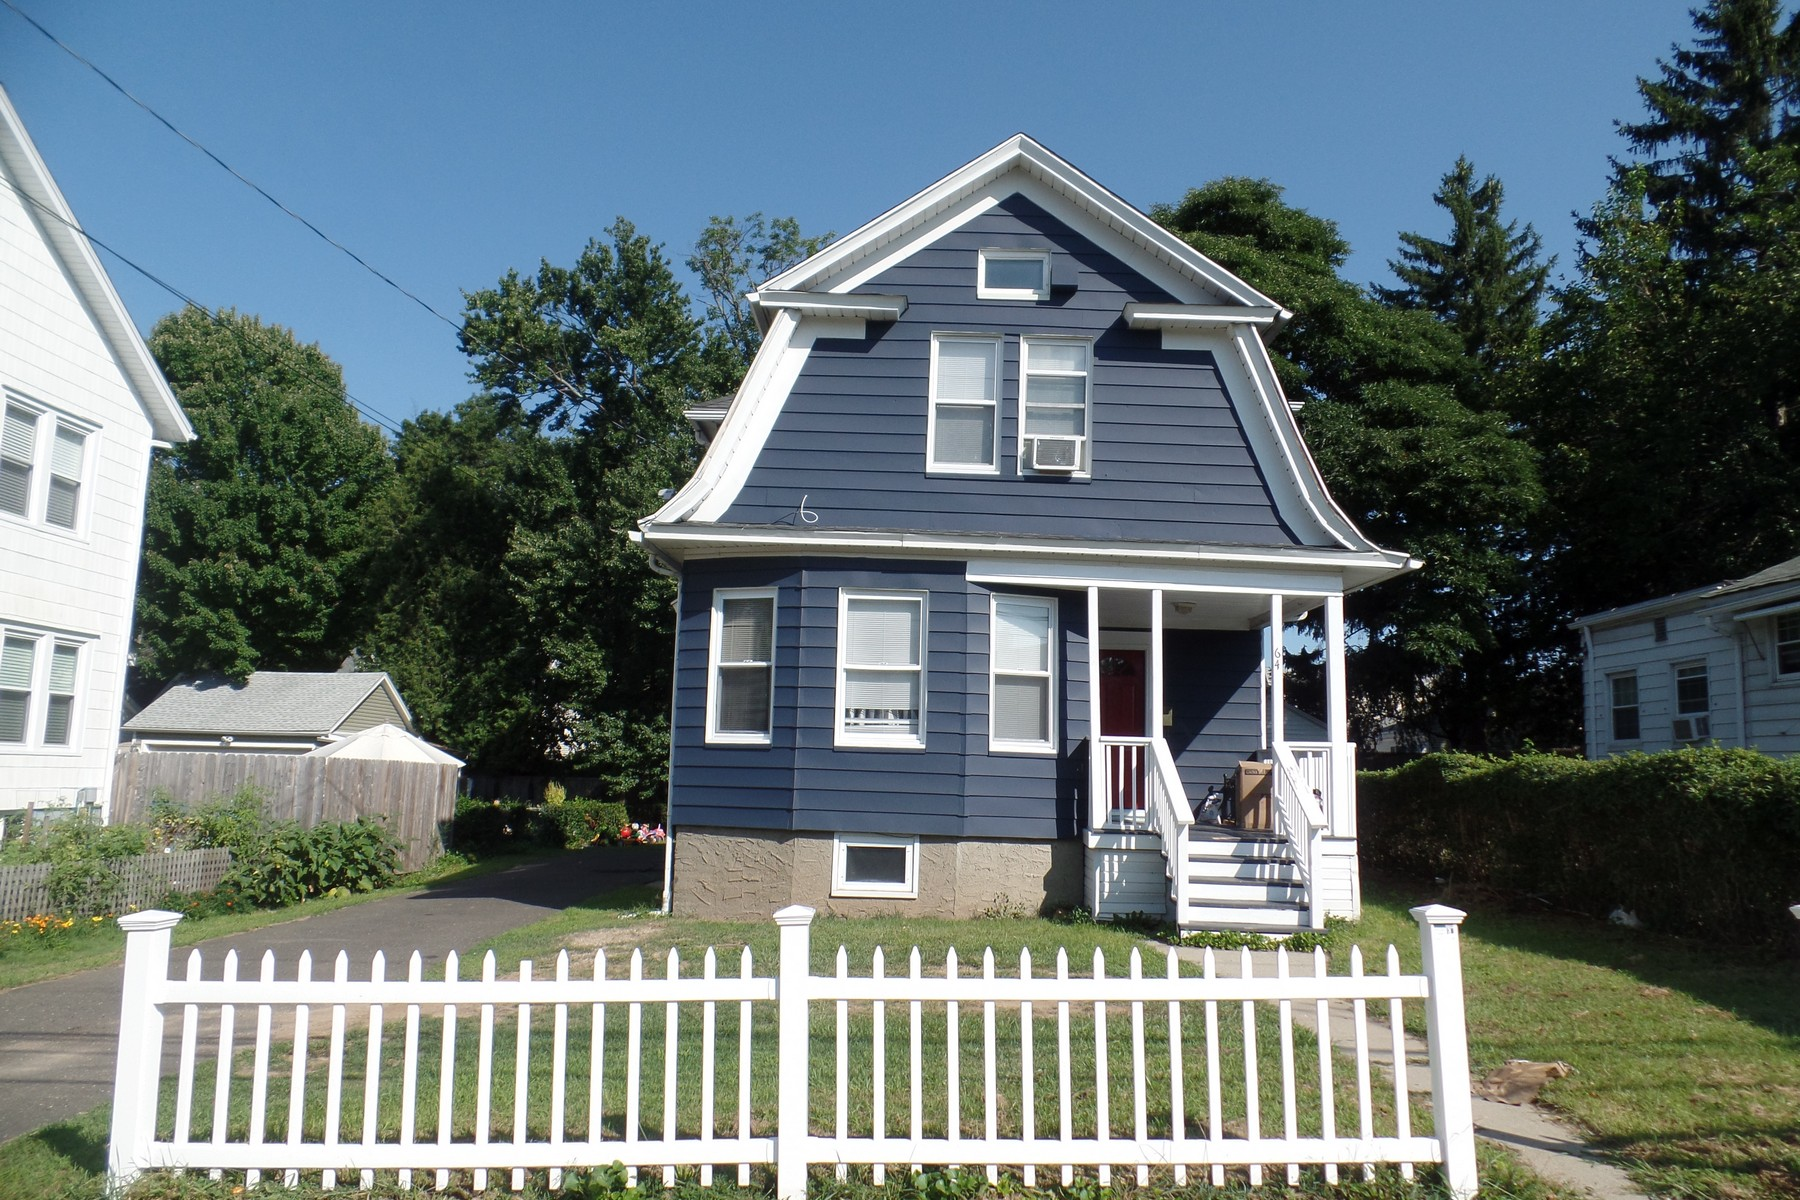 Moradia para Venda às Newly Updated Three Bedroom Home on Quiet Street in Upper North End 64 Woodmont Avenue Bridgeport, Connecticut, 06606 Estados Unidos